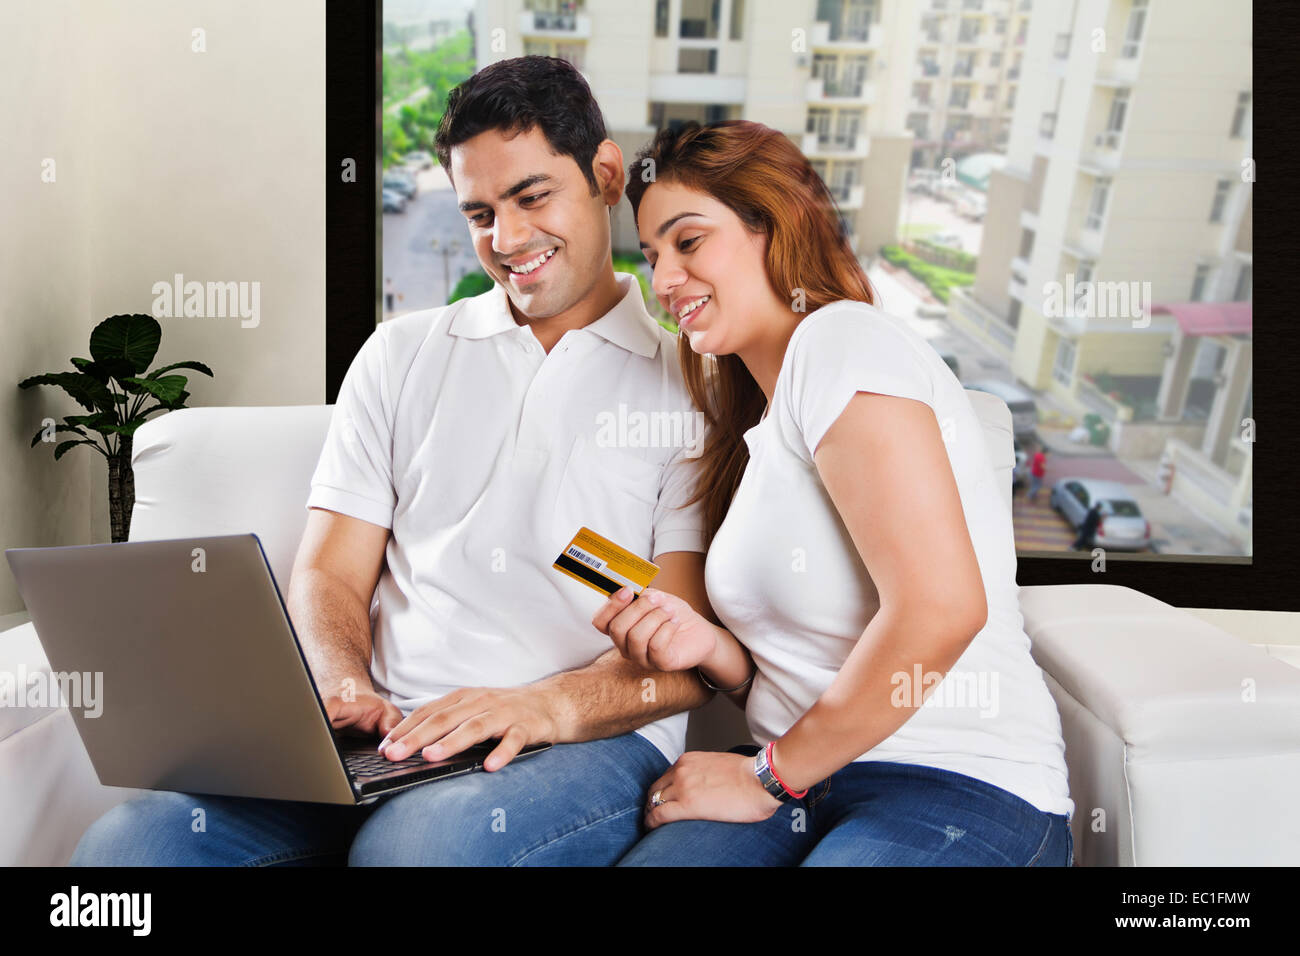 online dating for married in india